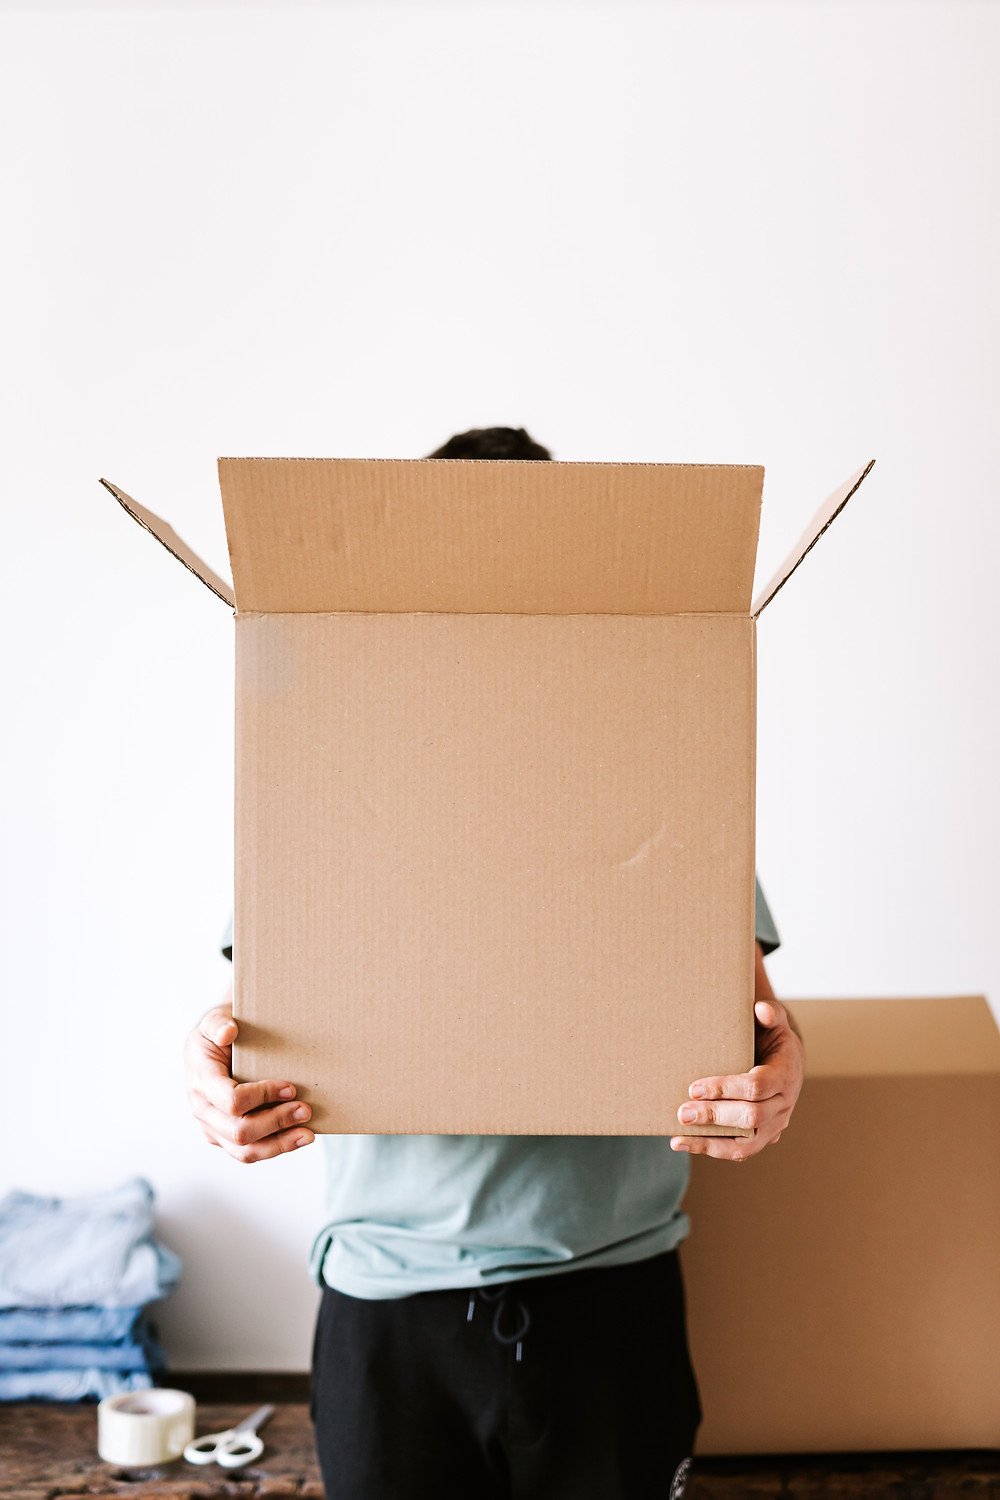 Man carrying a box. We describe how to maximize sales via a free shipping strategy.